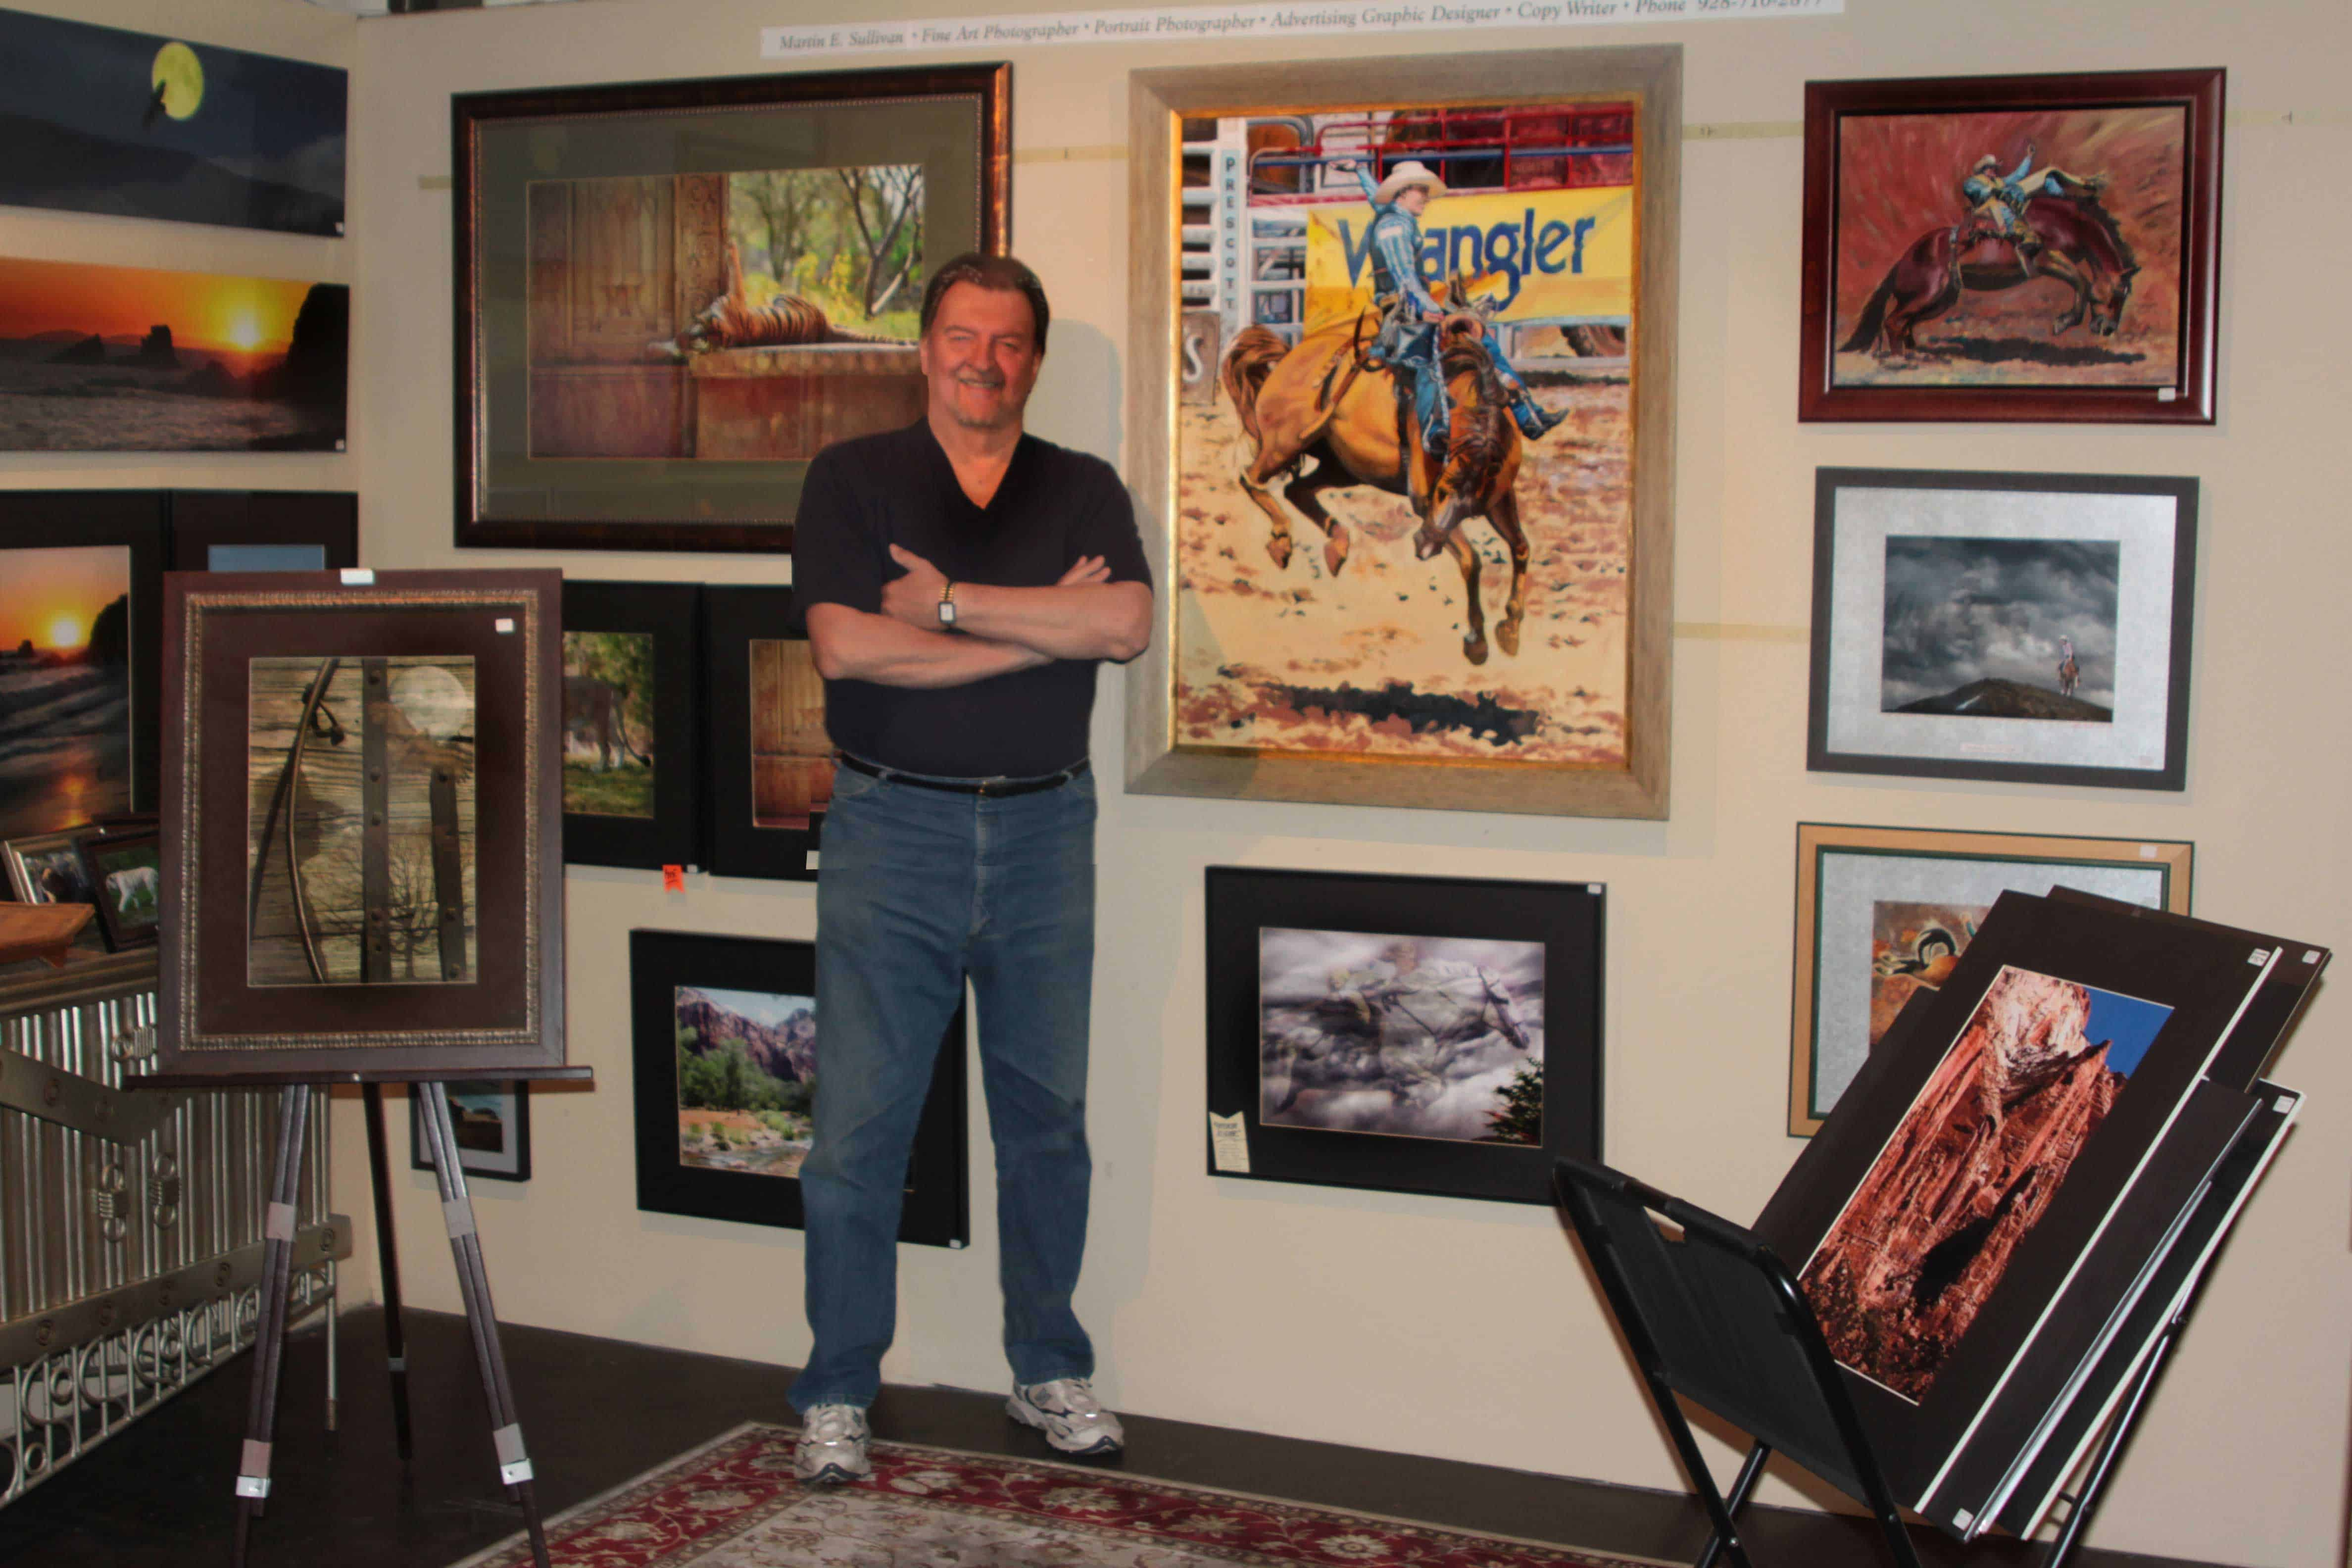 <h4>Yes, its me posing for you</h4><br> <p>Taken when I had gallery space in Prescott Arizona. The rodeo rider is an oil painting I'm still working on. It seems I'm always adding or changing something on it. One day I'll call it done... just not yet.</p>